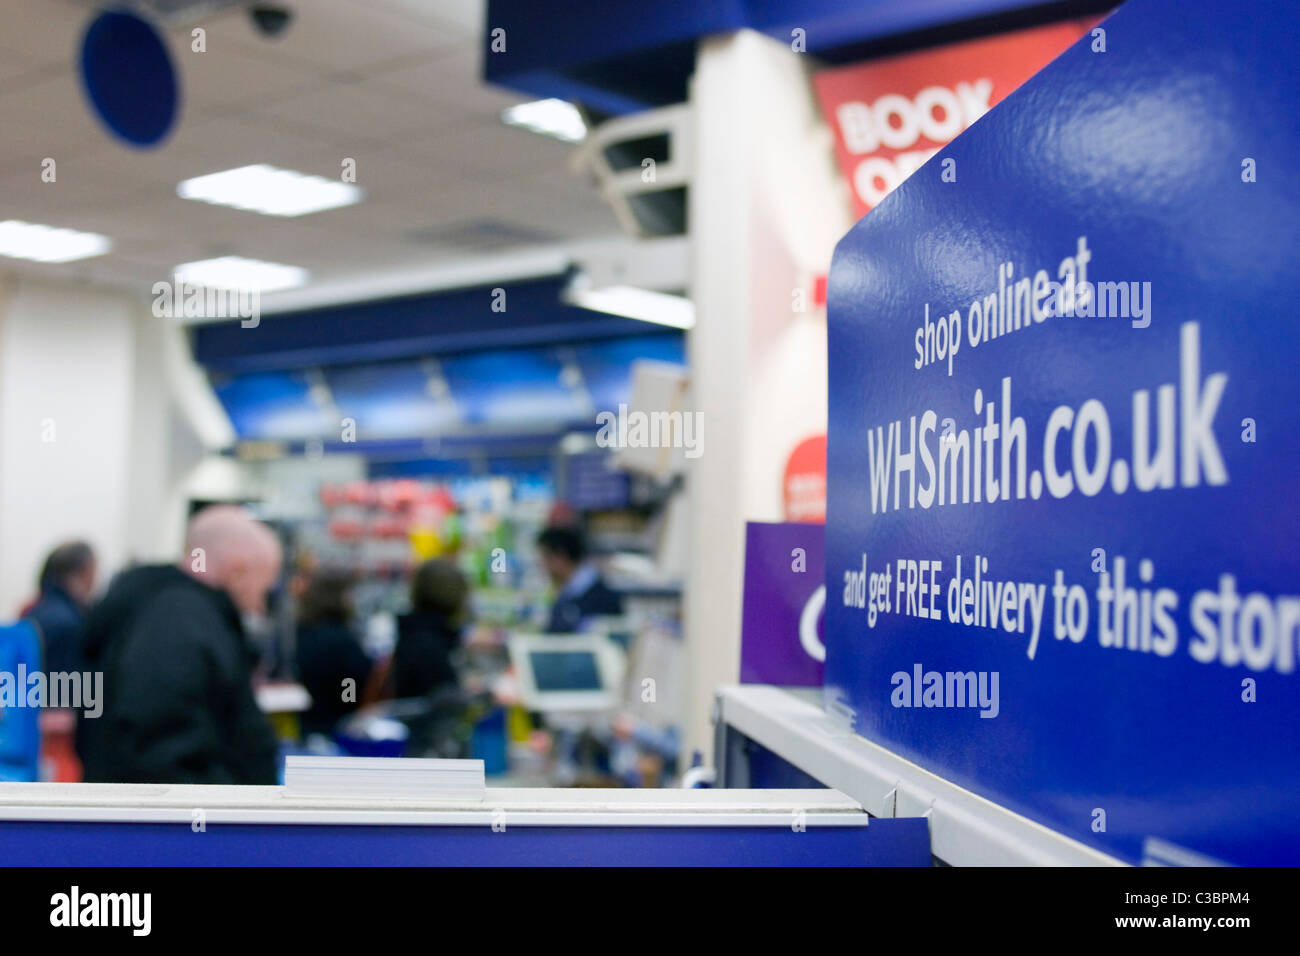 A whsmith.co.uk advert, with customers queuing inside a WH Smith store. - Stock Image